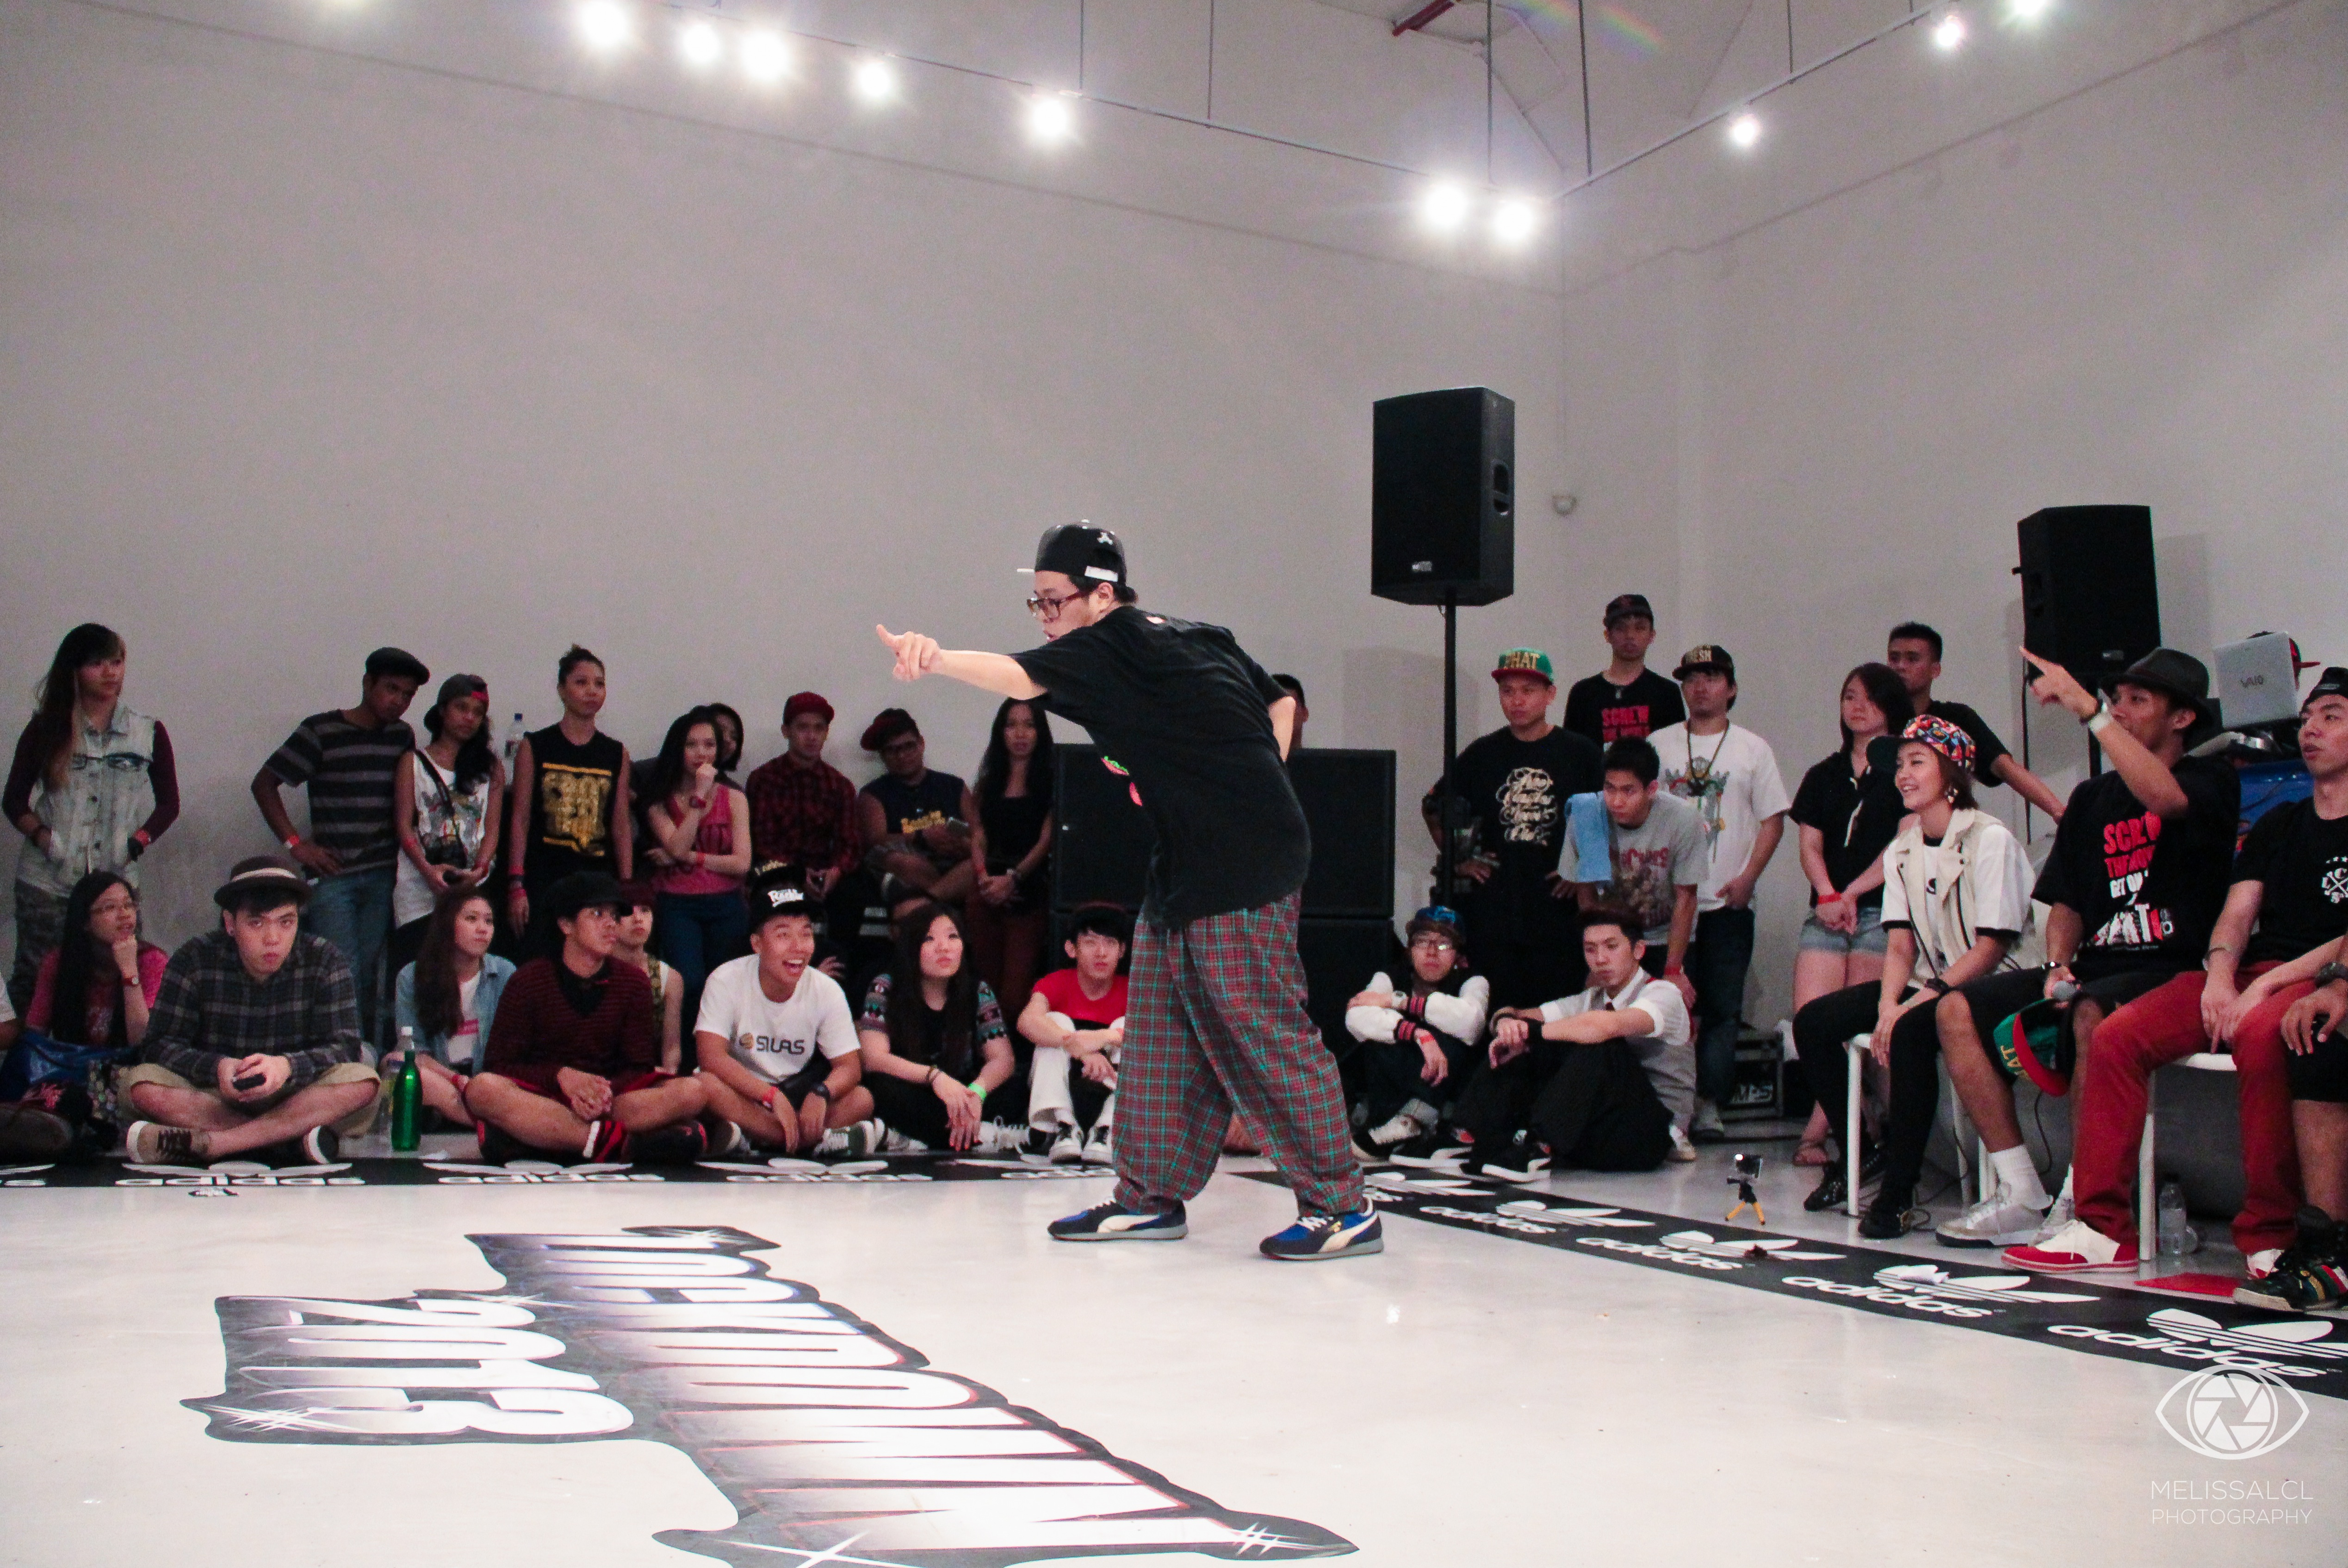 Chunky performing during the judges' showcase at Lockdown 2013.